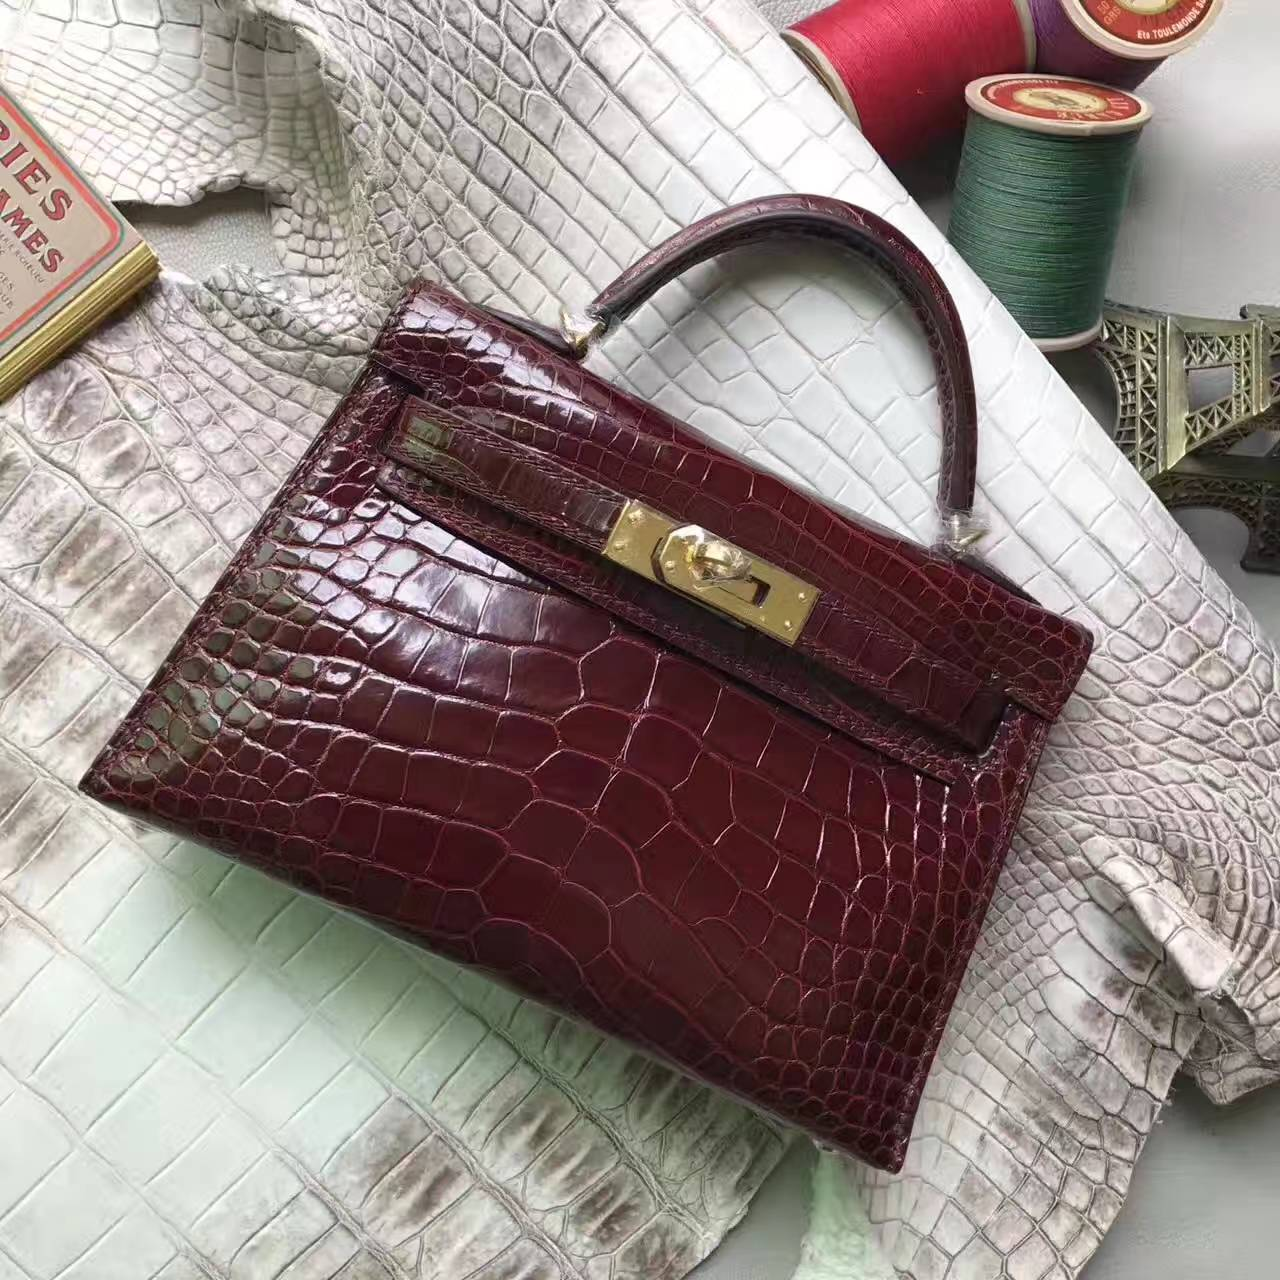 Hand Stitching Hermes Crocodile Shiny Minikelly-2 Clutch in CK57 Bordeaux